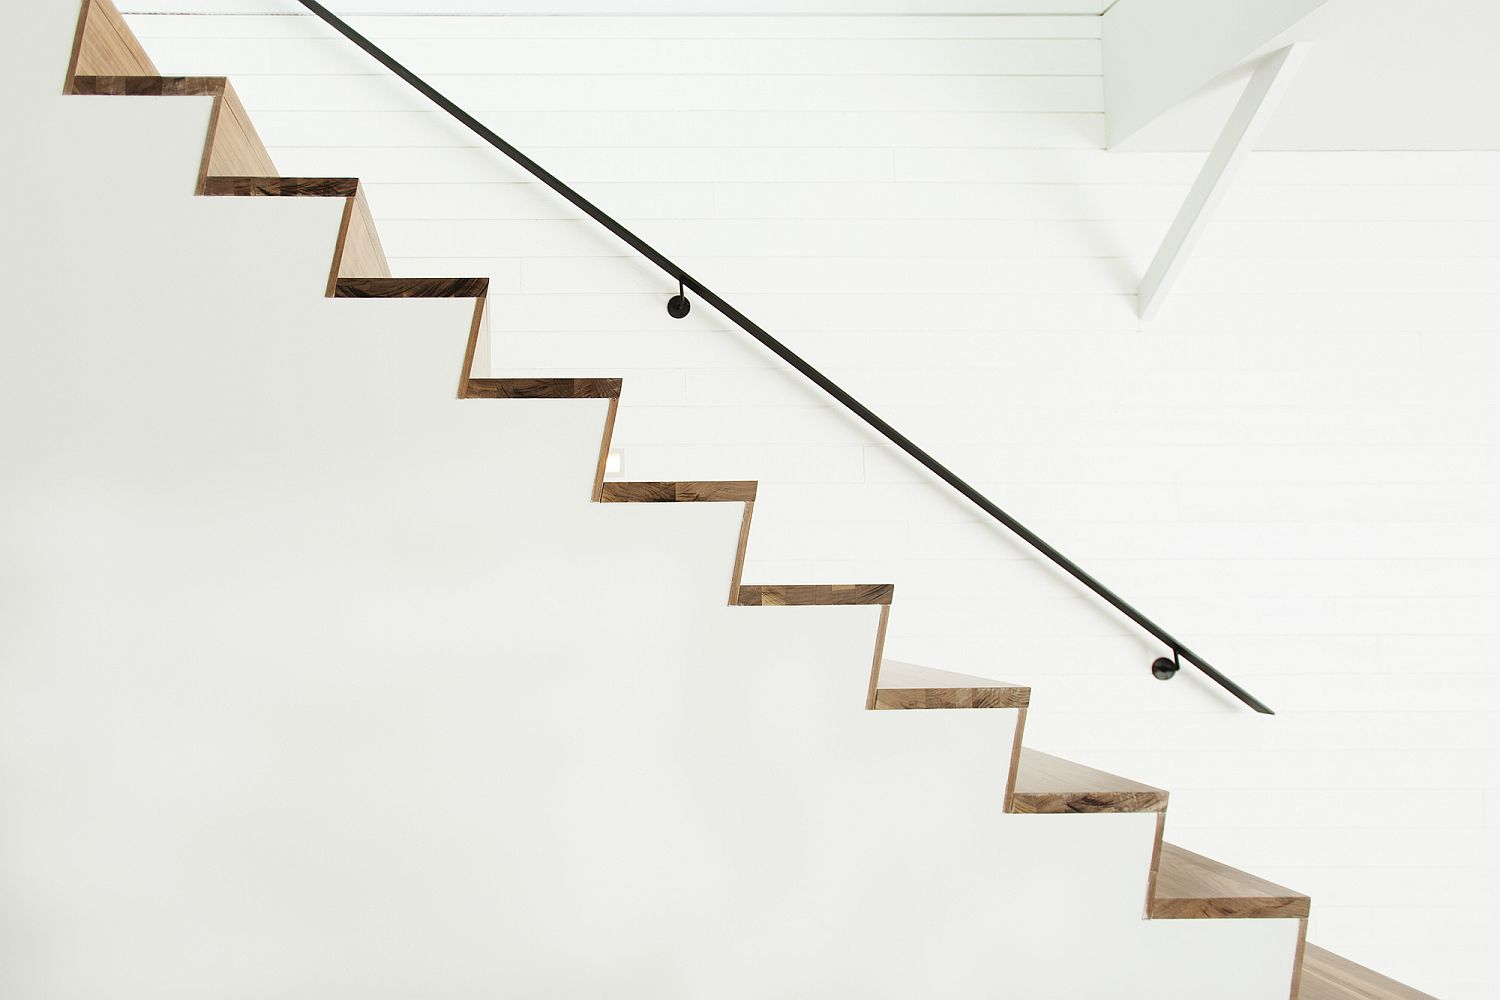 Minimal-and-sculptural-stairway-in-wood-for-the-contemporary-interior